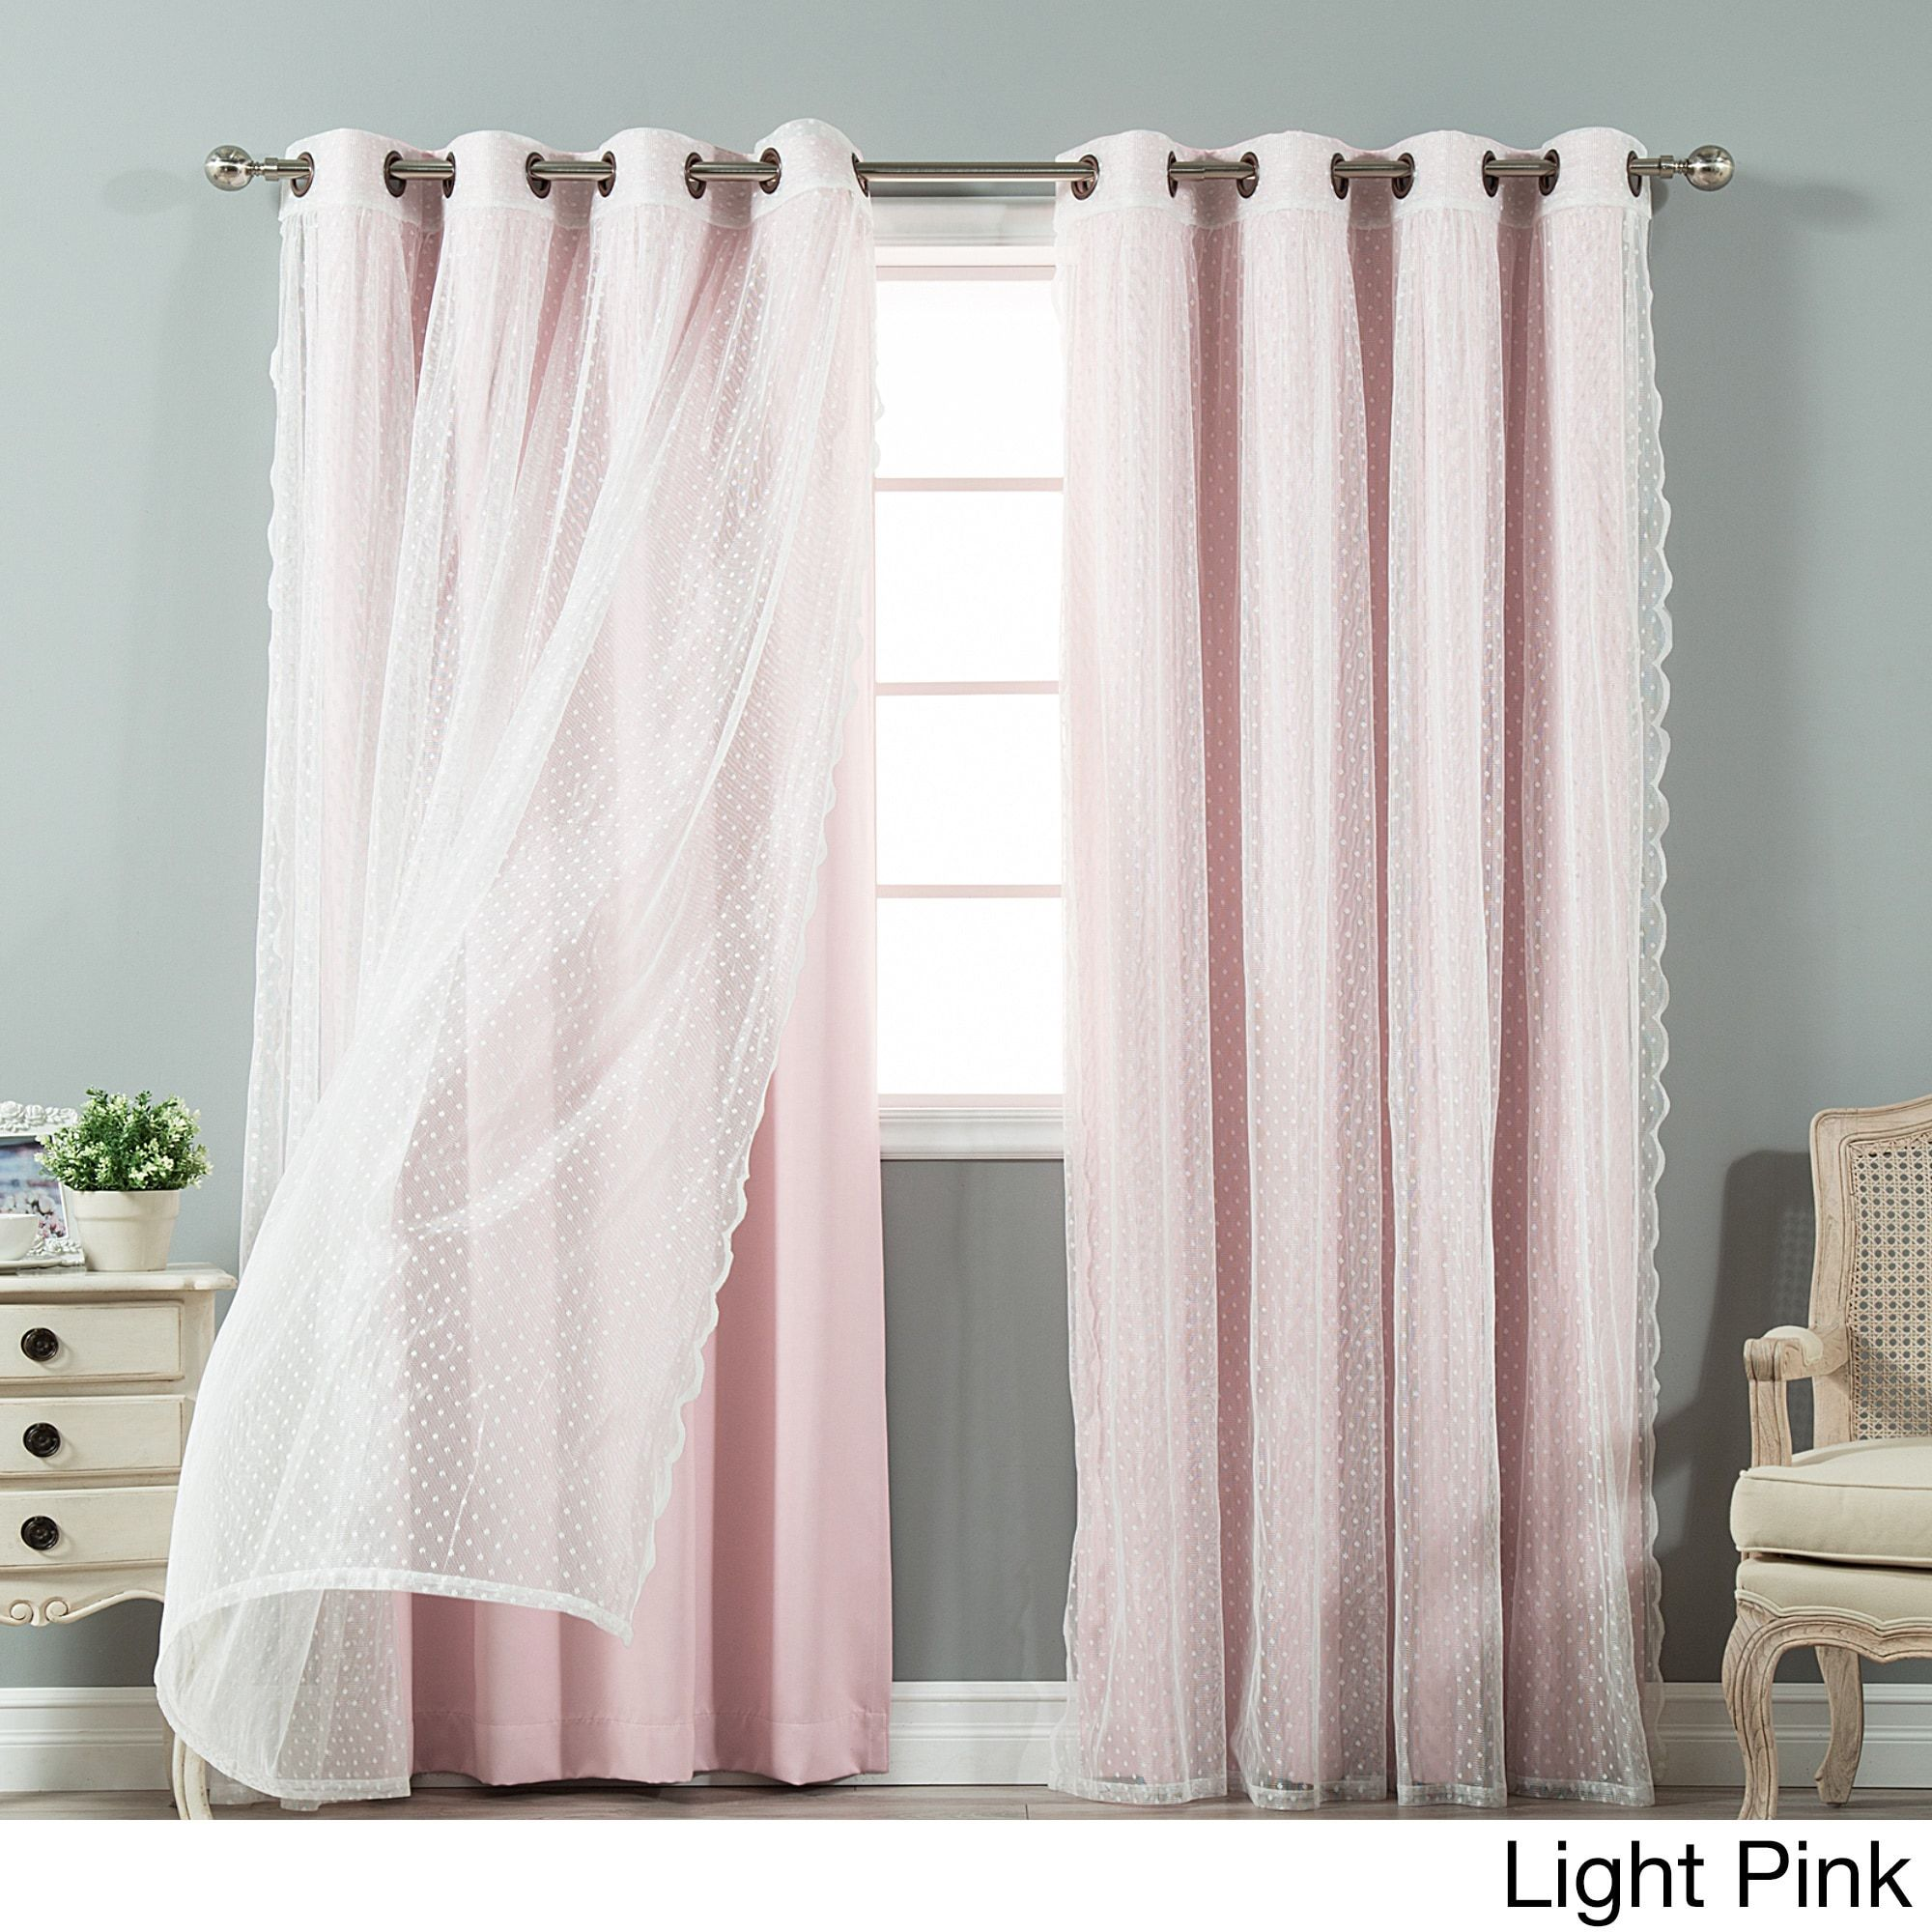 Blackout And Dot Sheer 4 Piece Curtain